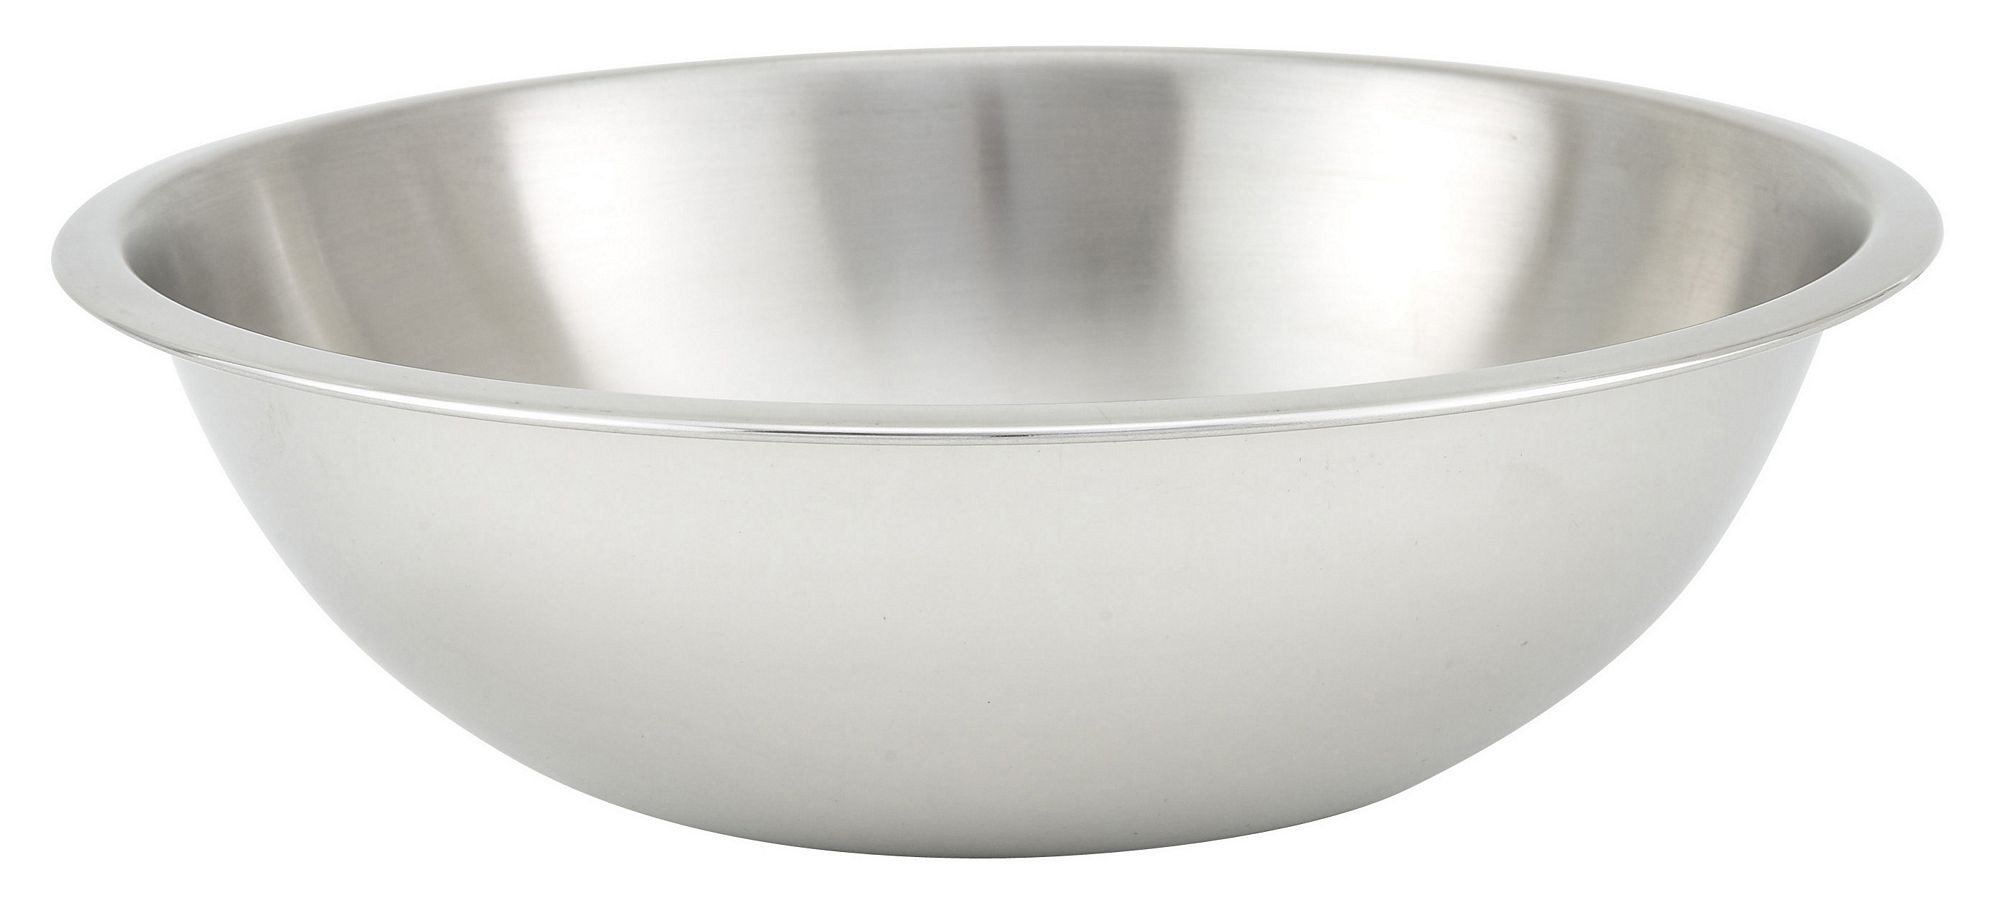 8 Qt Heavy Duty Stainless Mixing Bowl